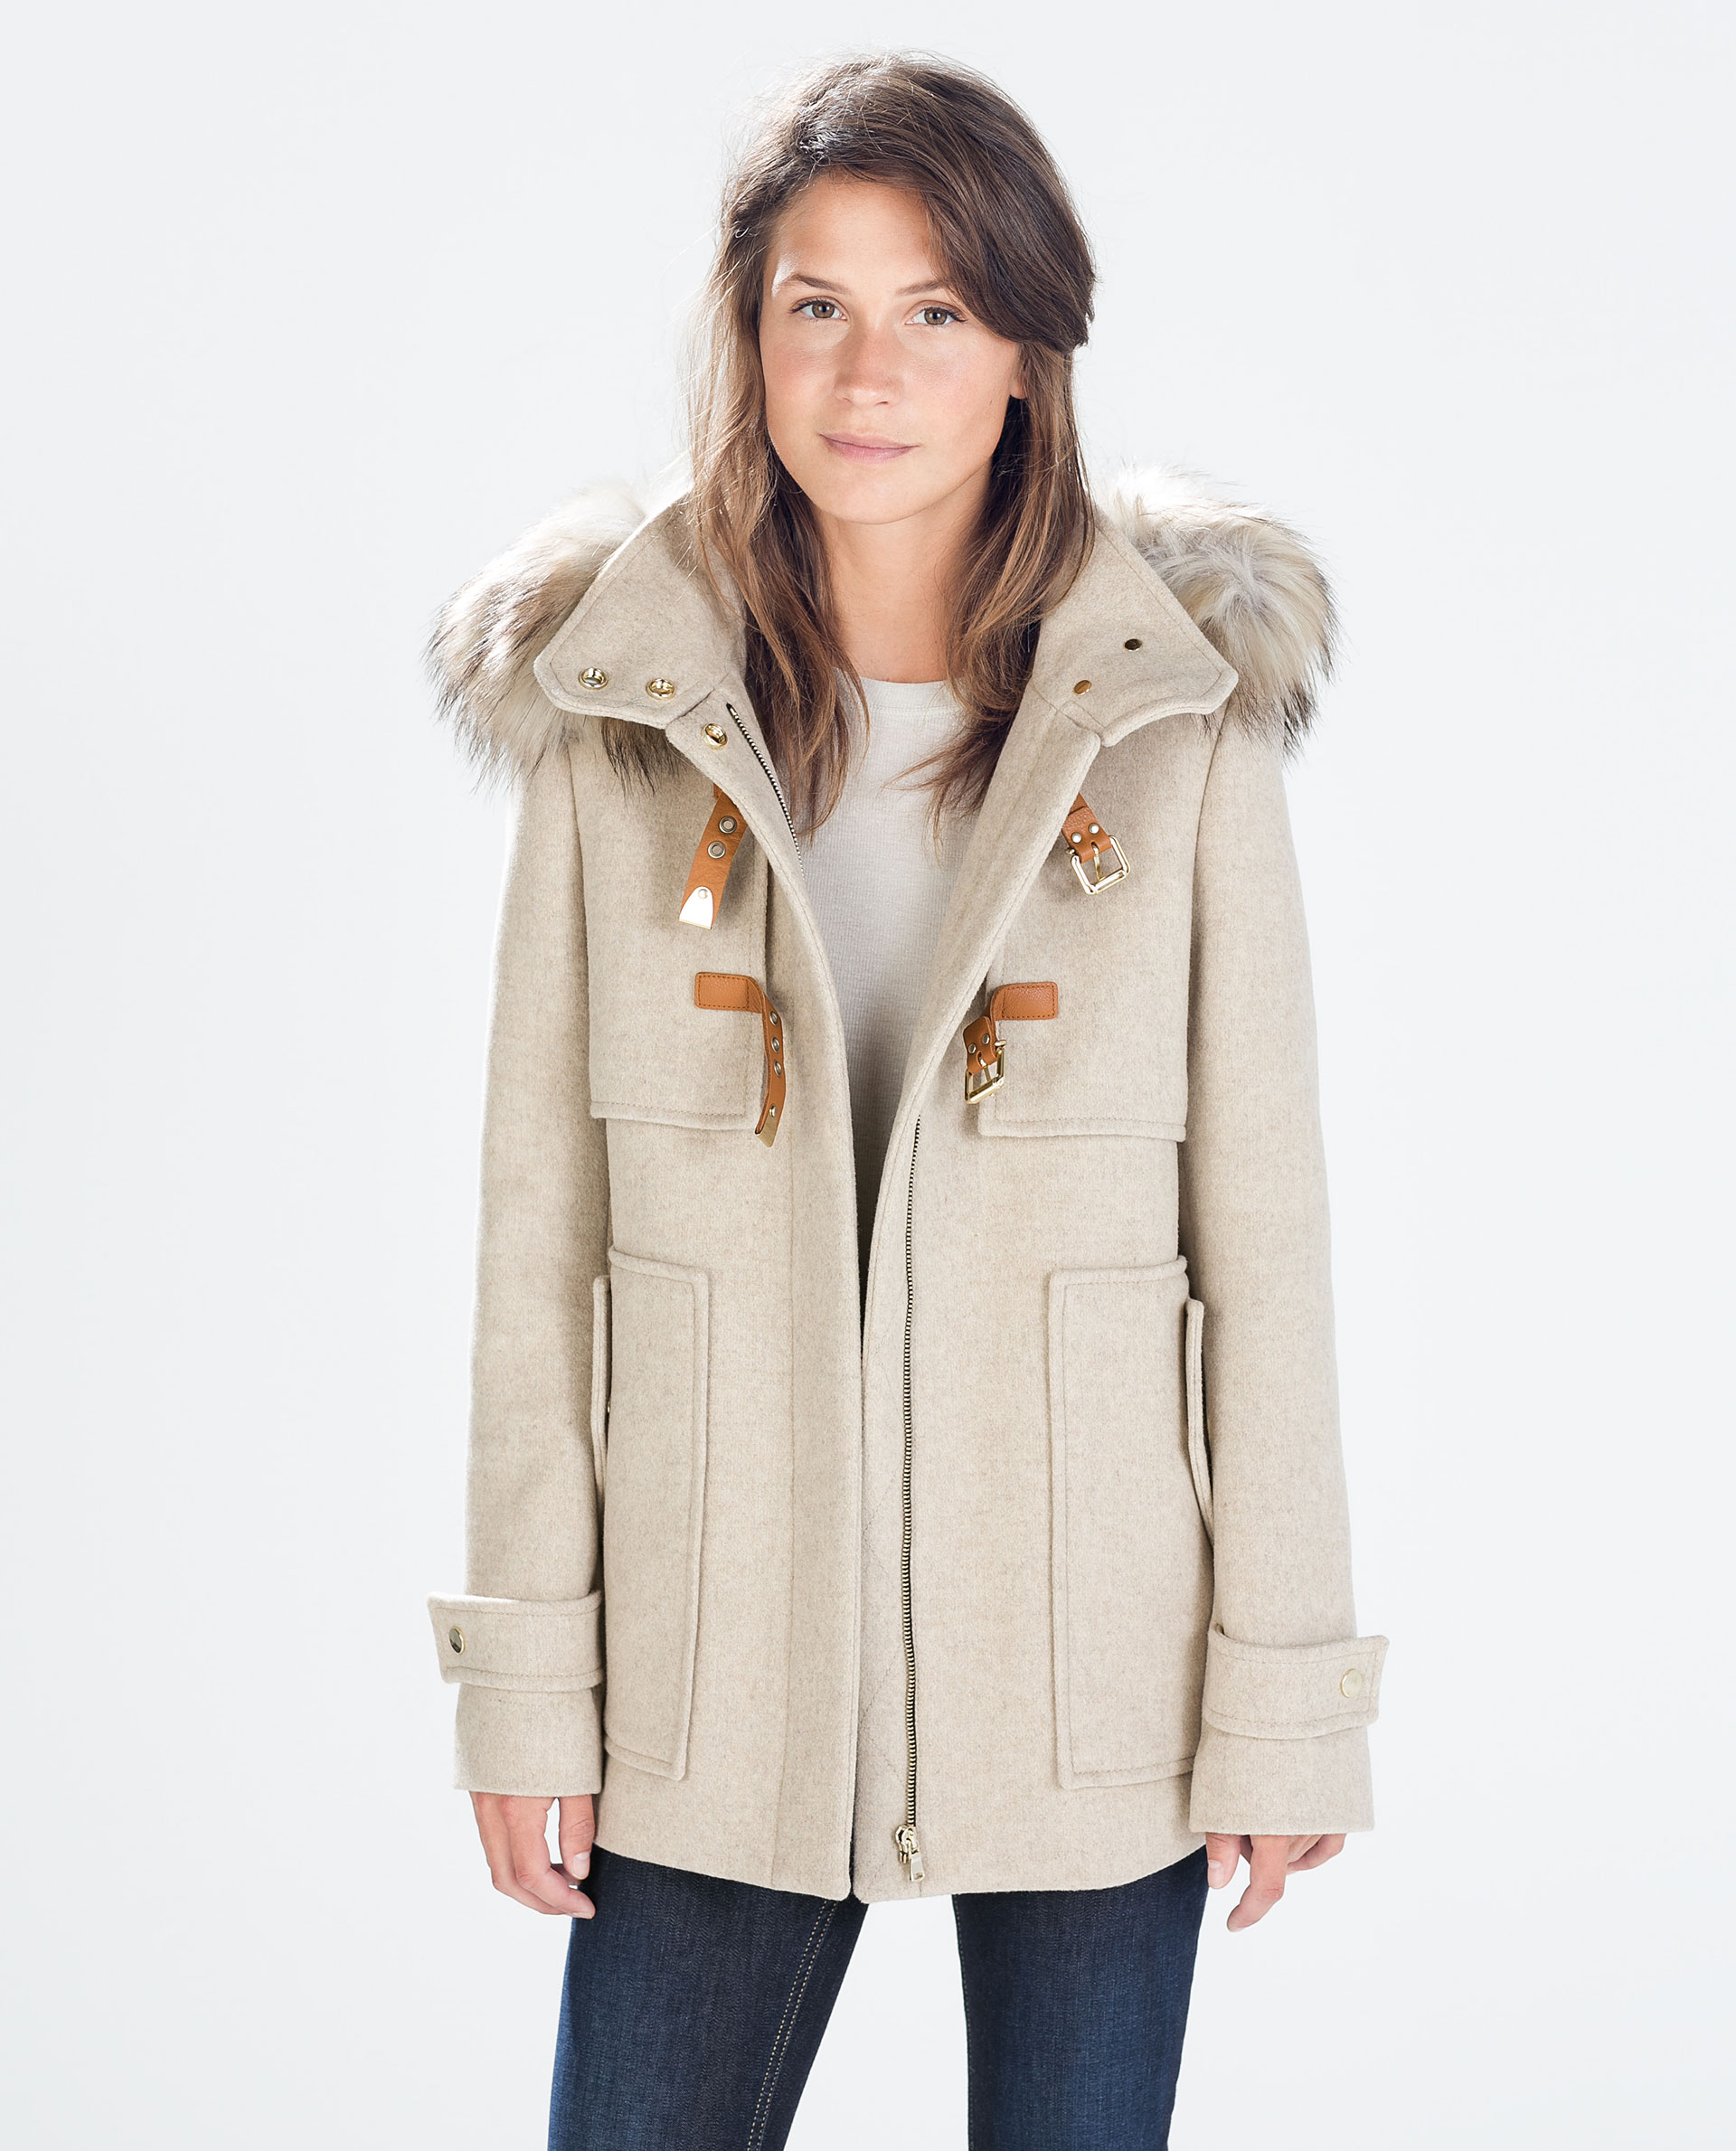 Zara Wool Duffle Coat With Fur Hood in Natural | Lyst